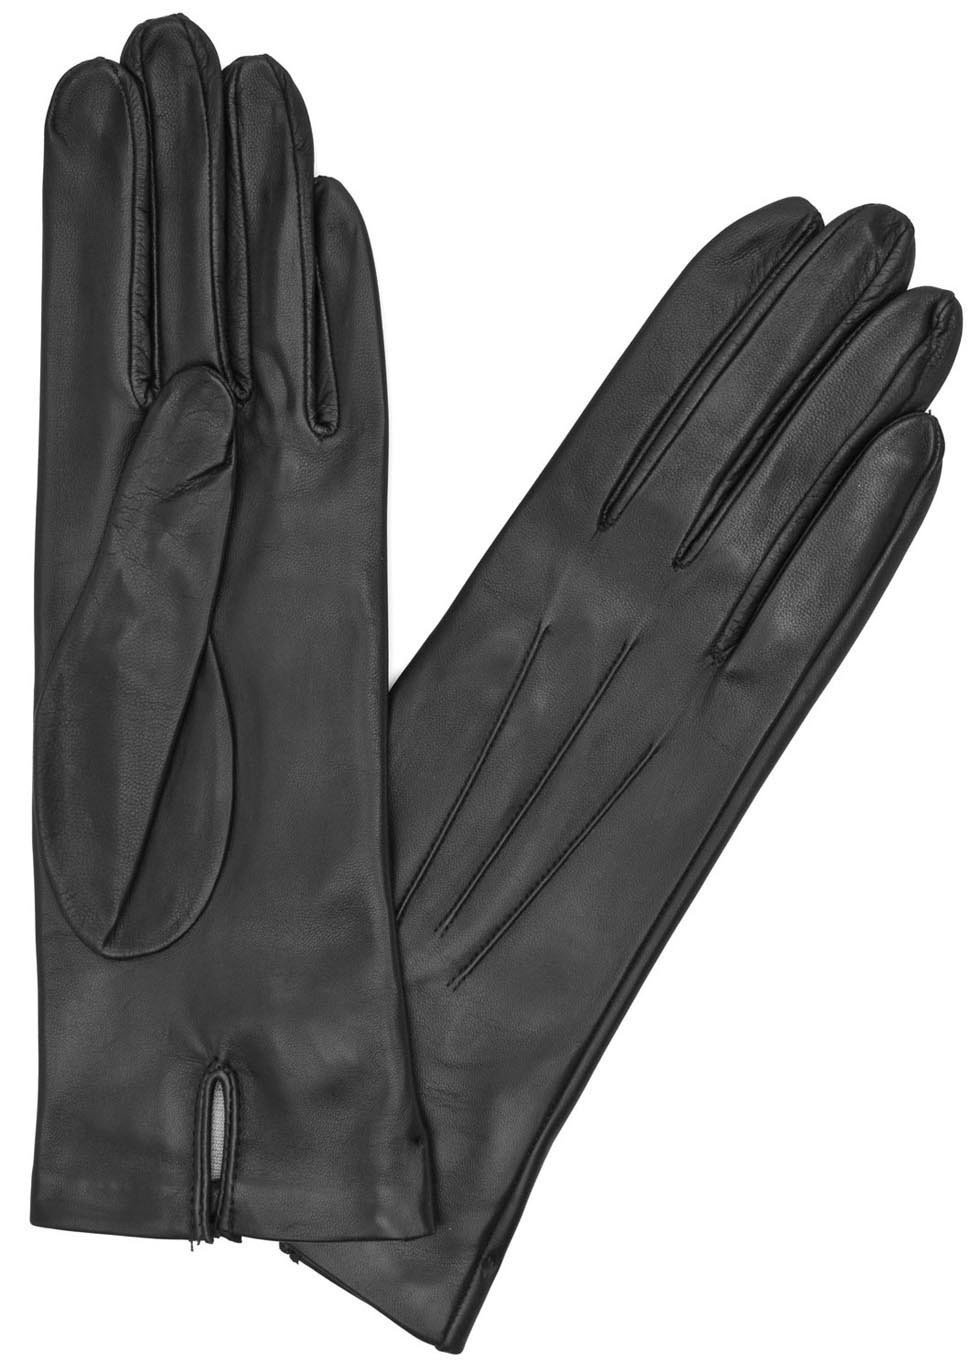 Black Silk Lined Leather Gloves - predominant colour: black; occasions: casual, creative work; type of pattern: standard; style: standard; length: wrist; material: leather; pattern: plain; season: a/w 2015; wardrobe: basic